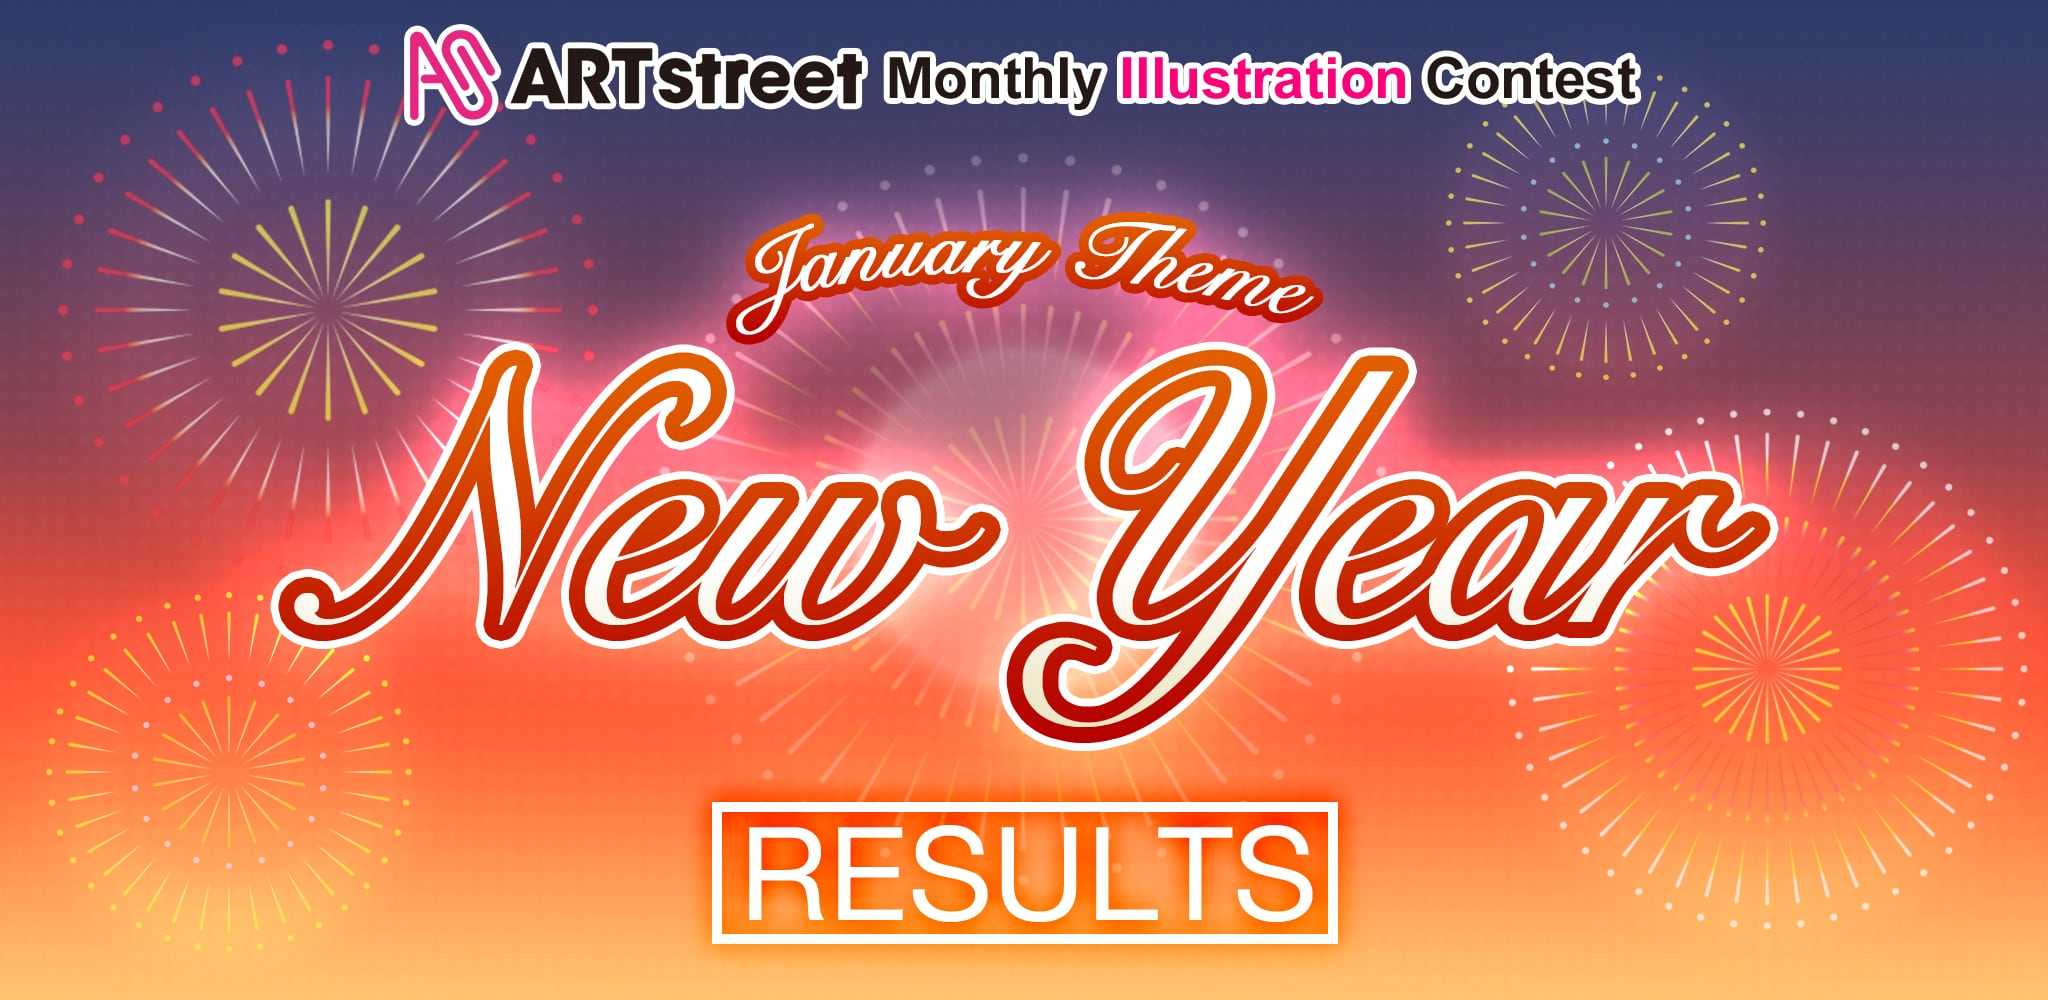 ART street Monthly Illustration Contest January Theme: New Year | Contest - ART street by MediBang